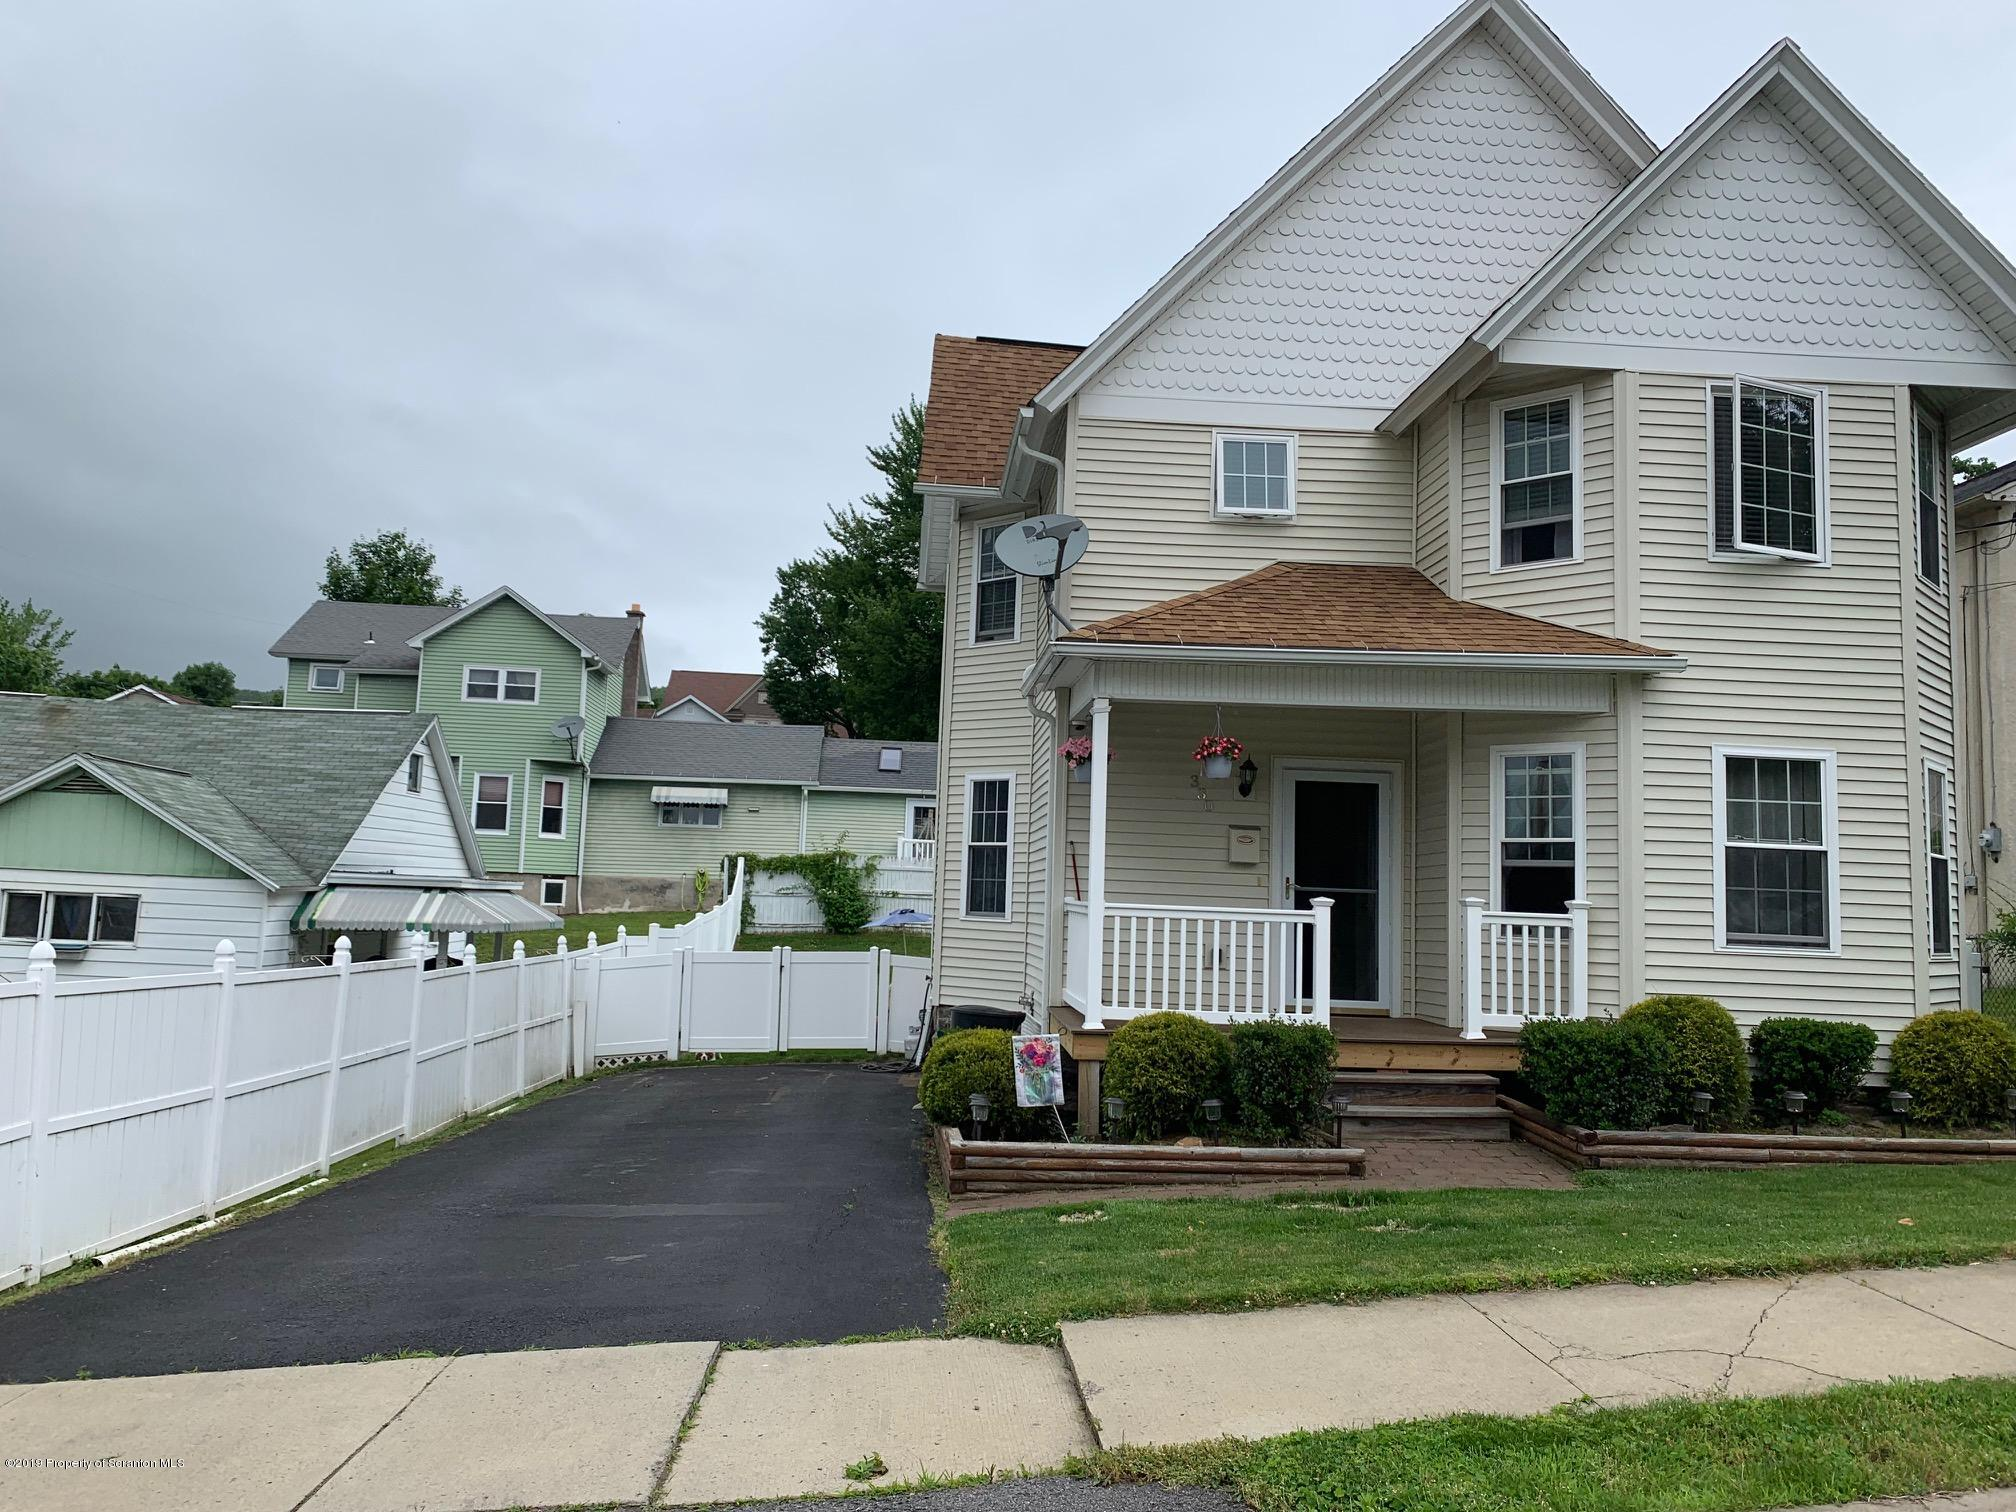 330 Wayne St, Archbald, Pennsylvania 18403, 3 Bedrooms Bedrooms, 7 Rooms Rooms,2 BathroomsBathrooms,Single Family,For Sale,Wayne,19-2747